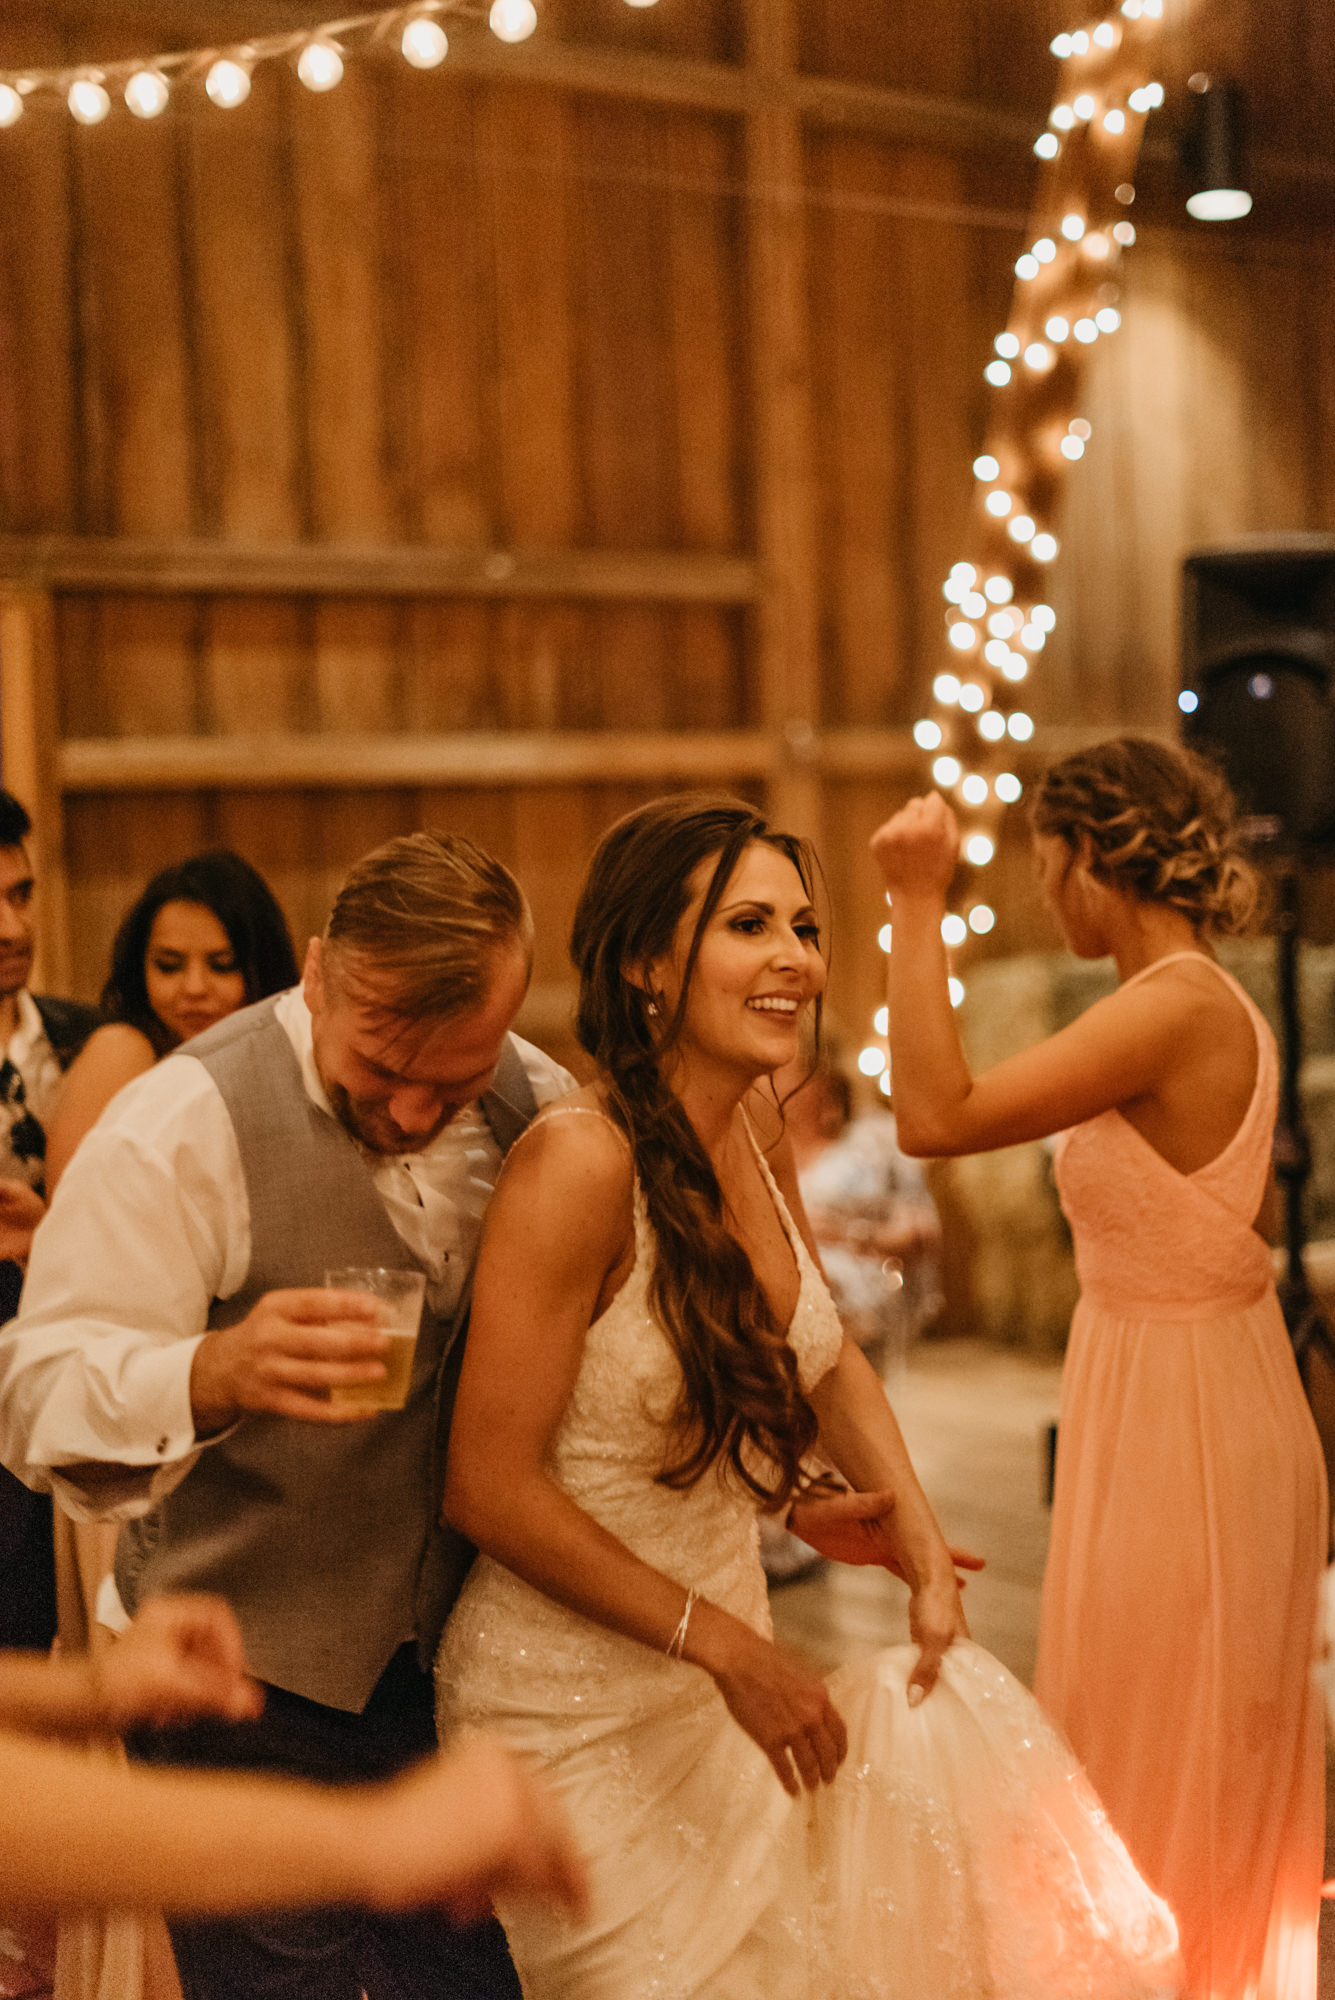 217-portland-northwest-wedding-bubble-exit-barn-string-lights.jpg